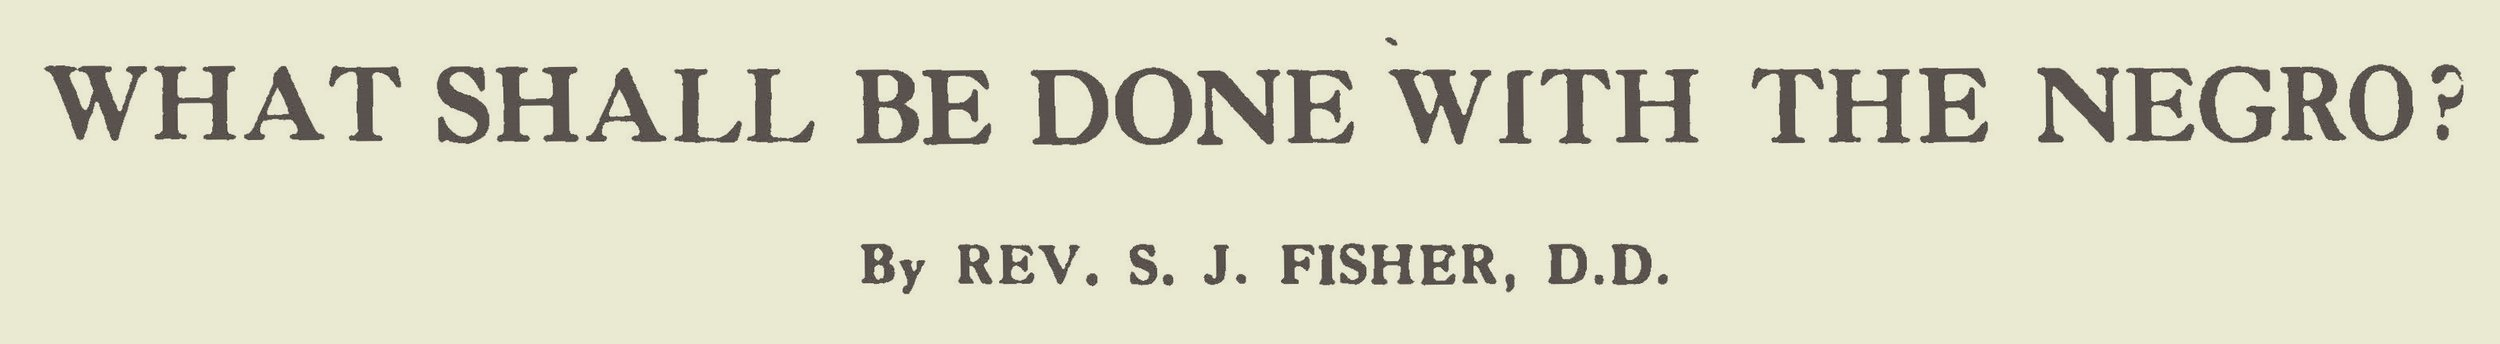 Fisher, Samuel Jackson, What Shall Be Done With the Negro Title Page.jpg